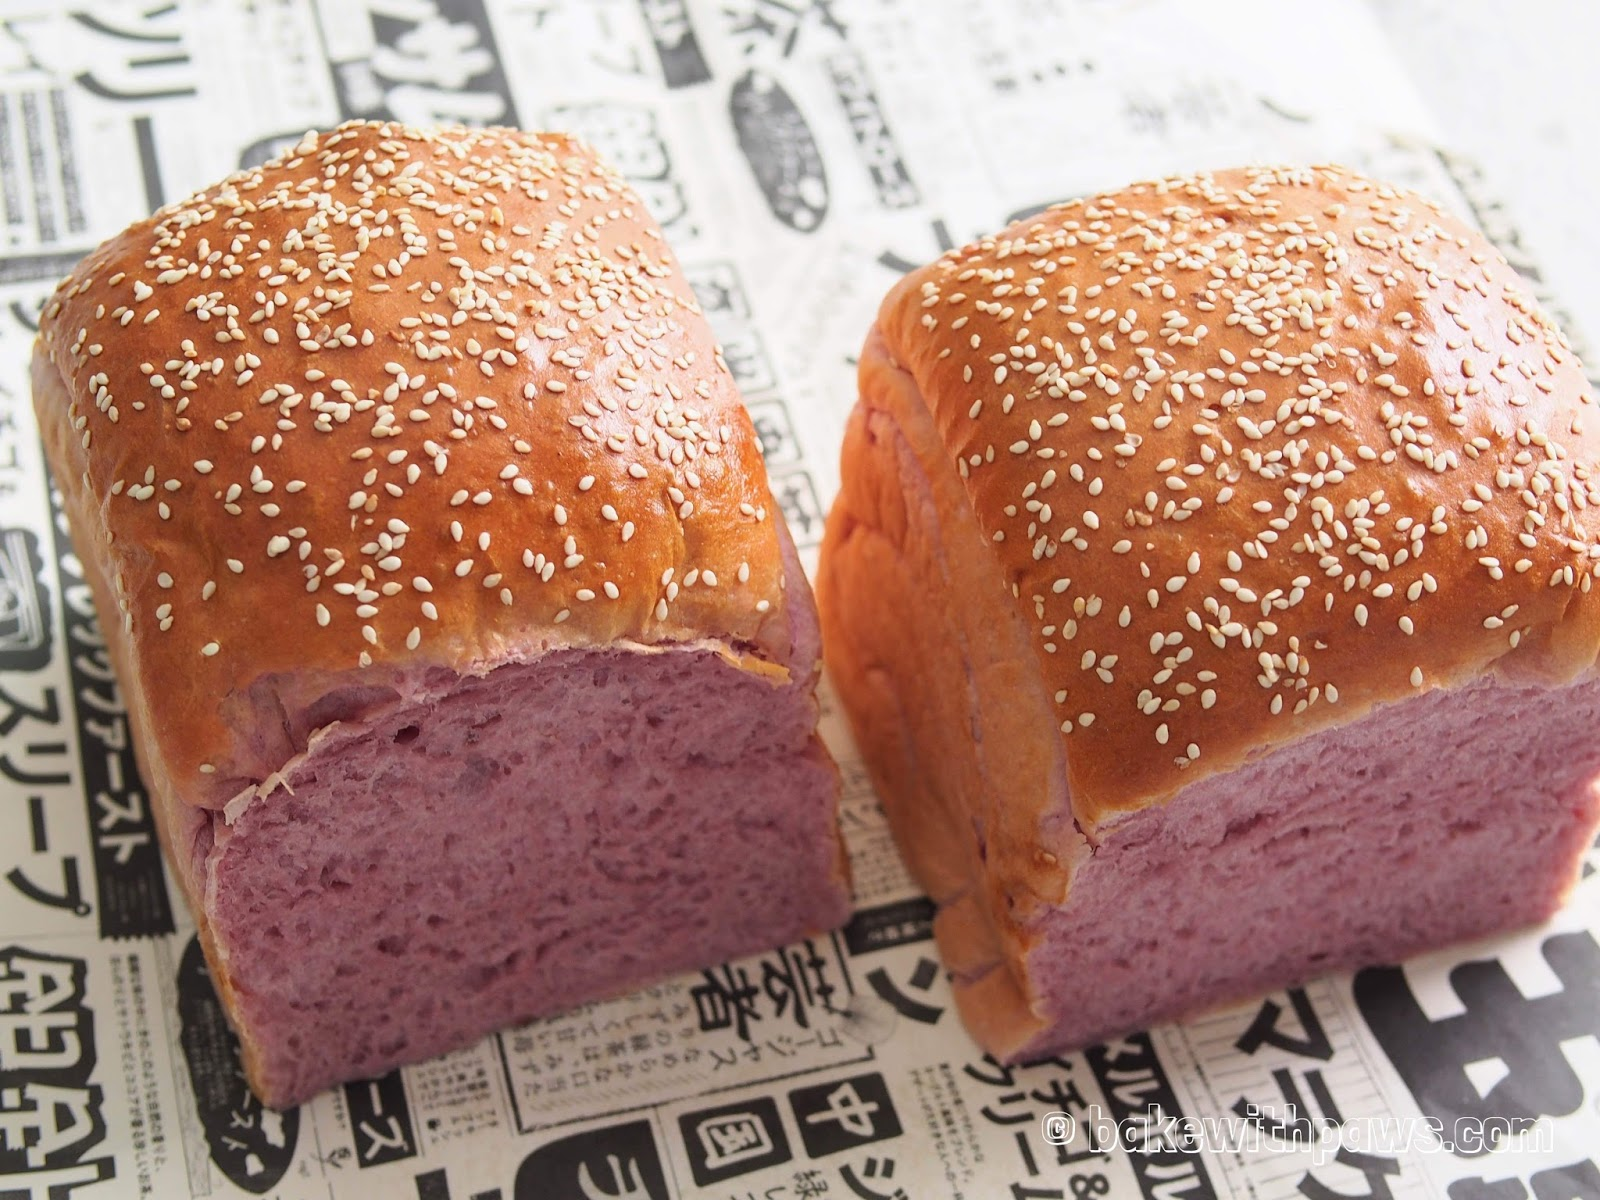 I Made This Japanese Purple Sweet Potato Loaf For My Step Daughter When She Was Back For Summer Holidays Recently I Have Made Her Few Different Breads But